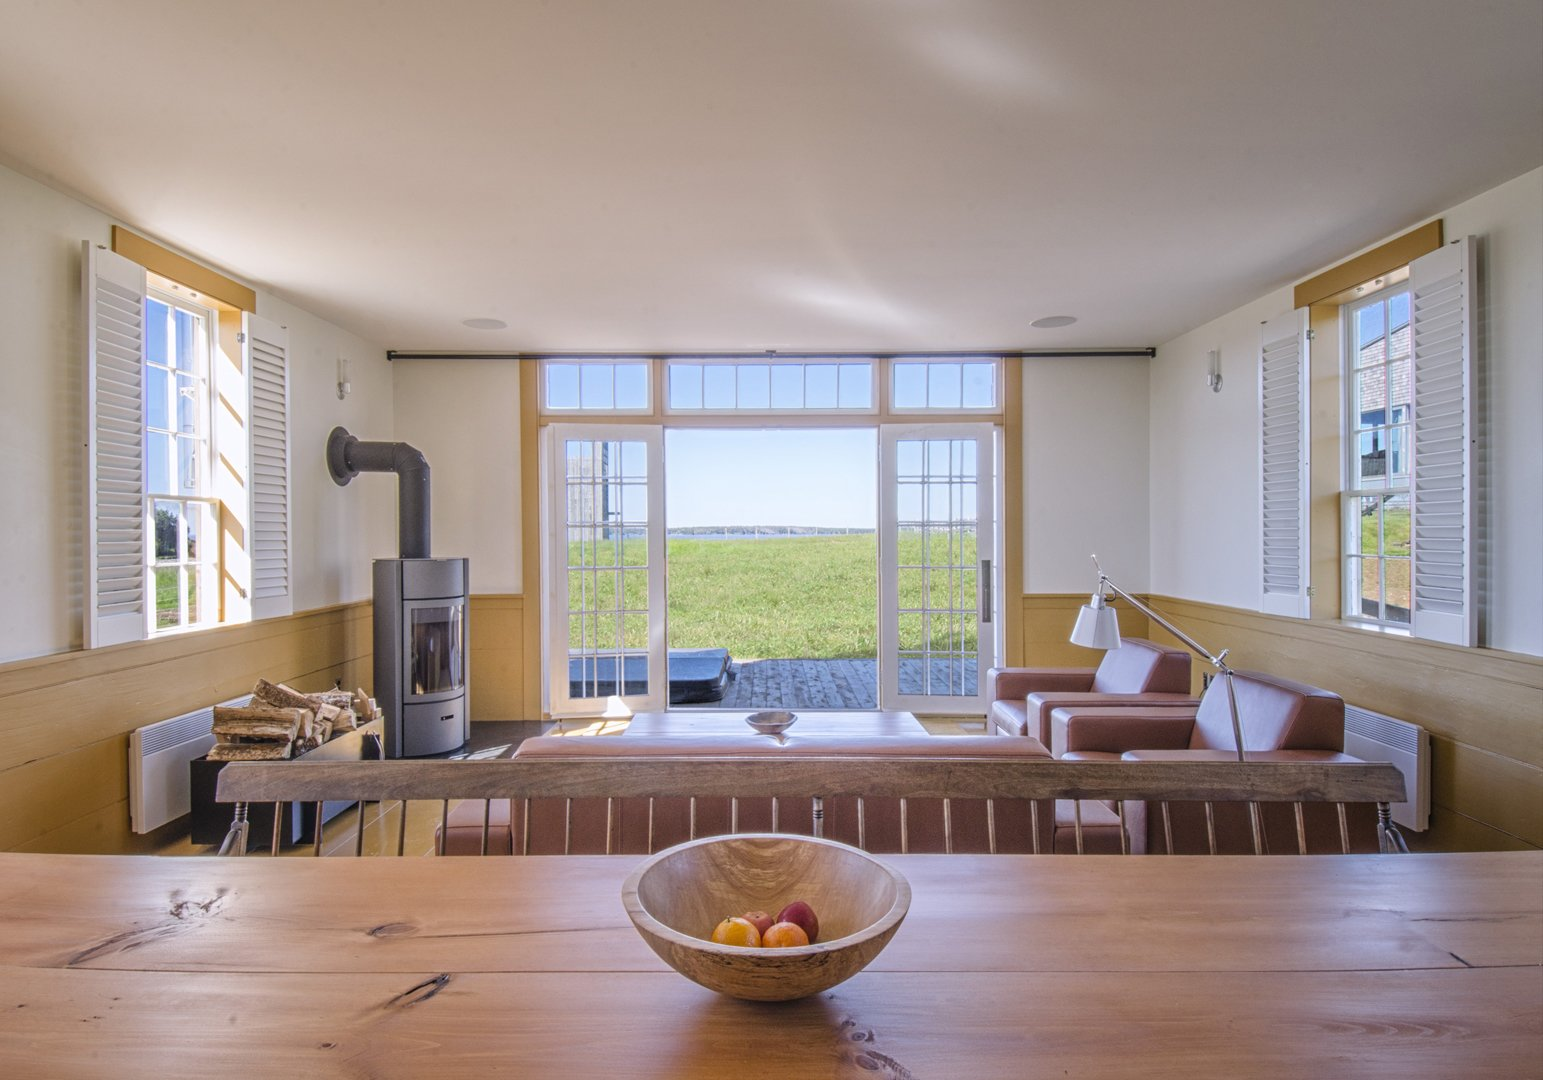 The open floor plan includes a kitchen with modern appliances, a half bath, and living and dining areas that open onto an outdoor terrace. A master bedroom and bunk room are upstairs along with a washer and dryer. Agrarian Pastime: Book a Village Stay in Nova Scotia - Photo 7 of 14